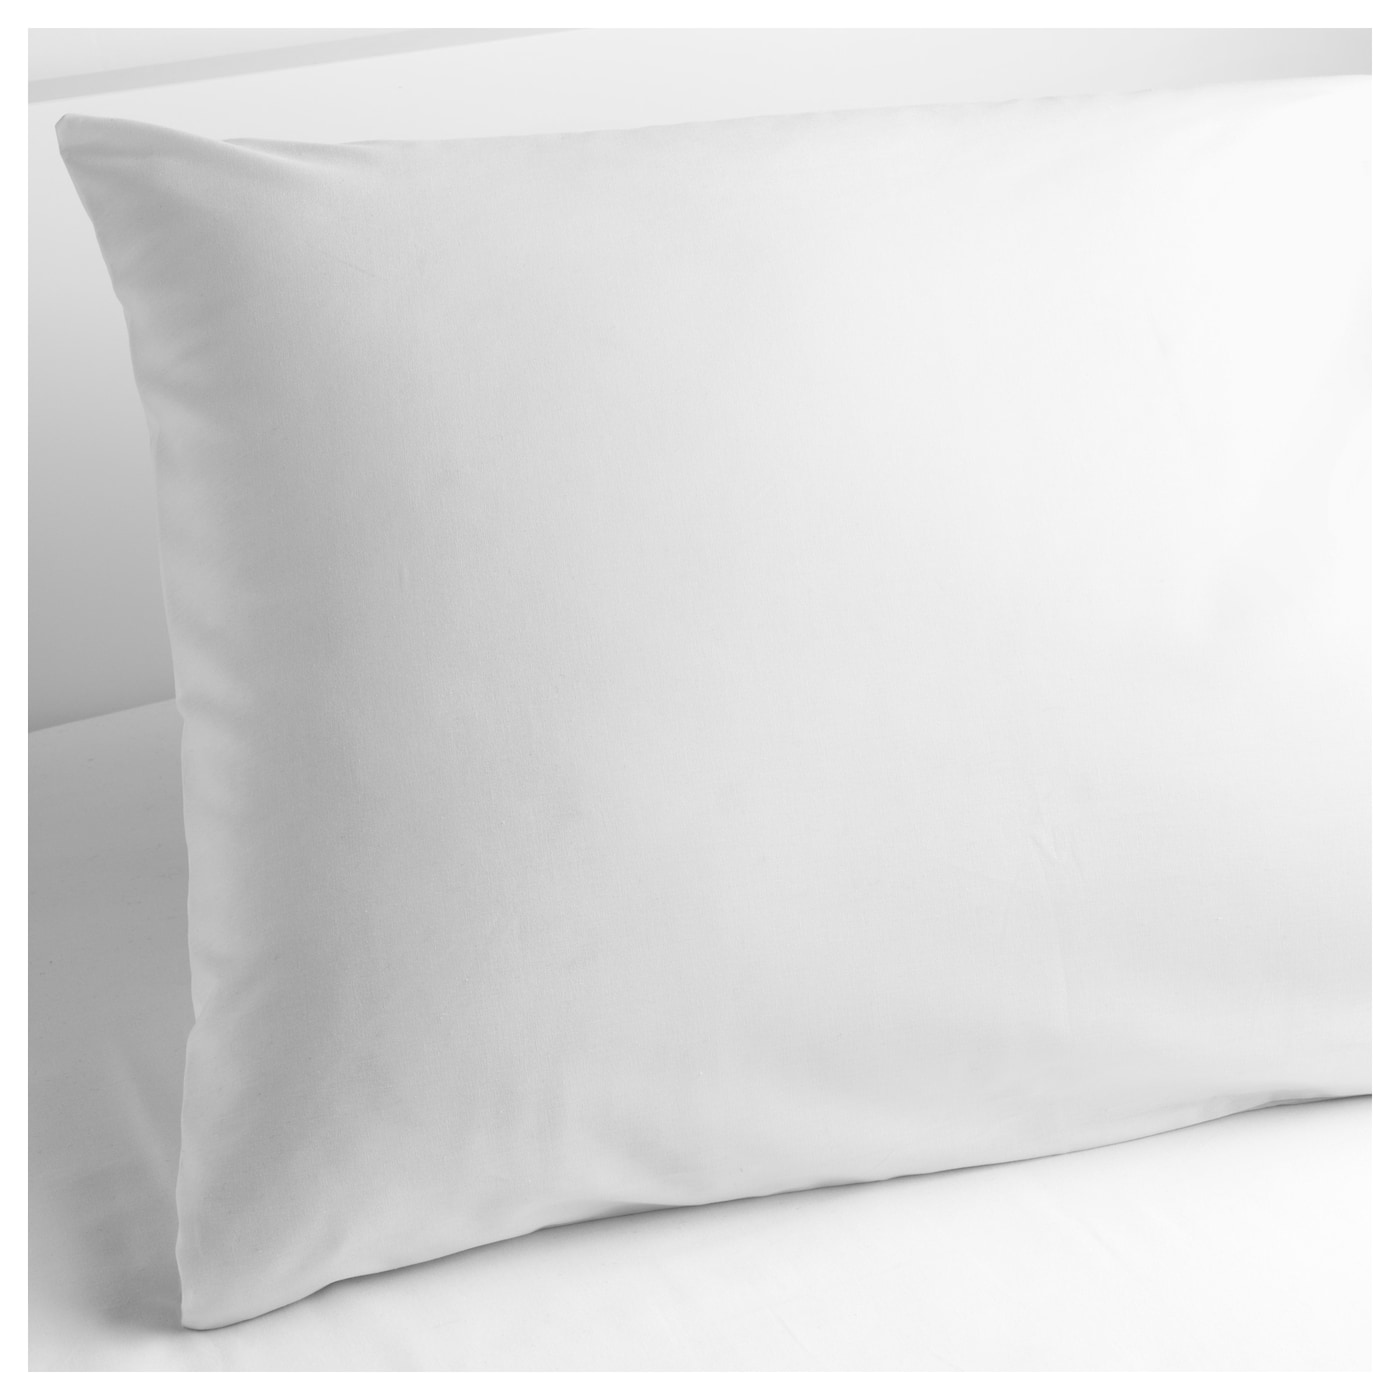 IKEA SÖMNTUTA pillowcase Made in 100% cotton ‒ a natural and durable material.